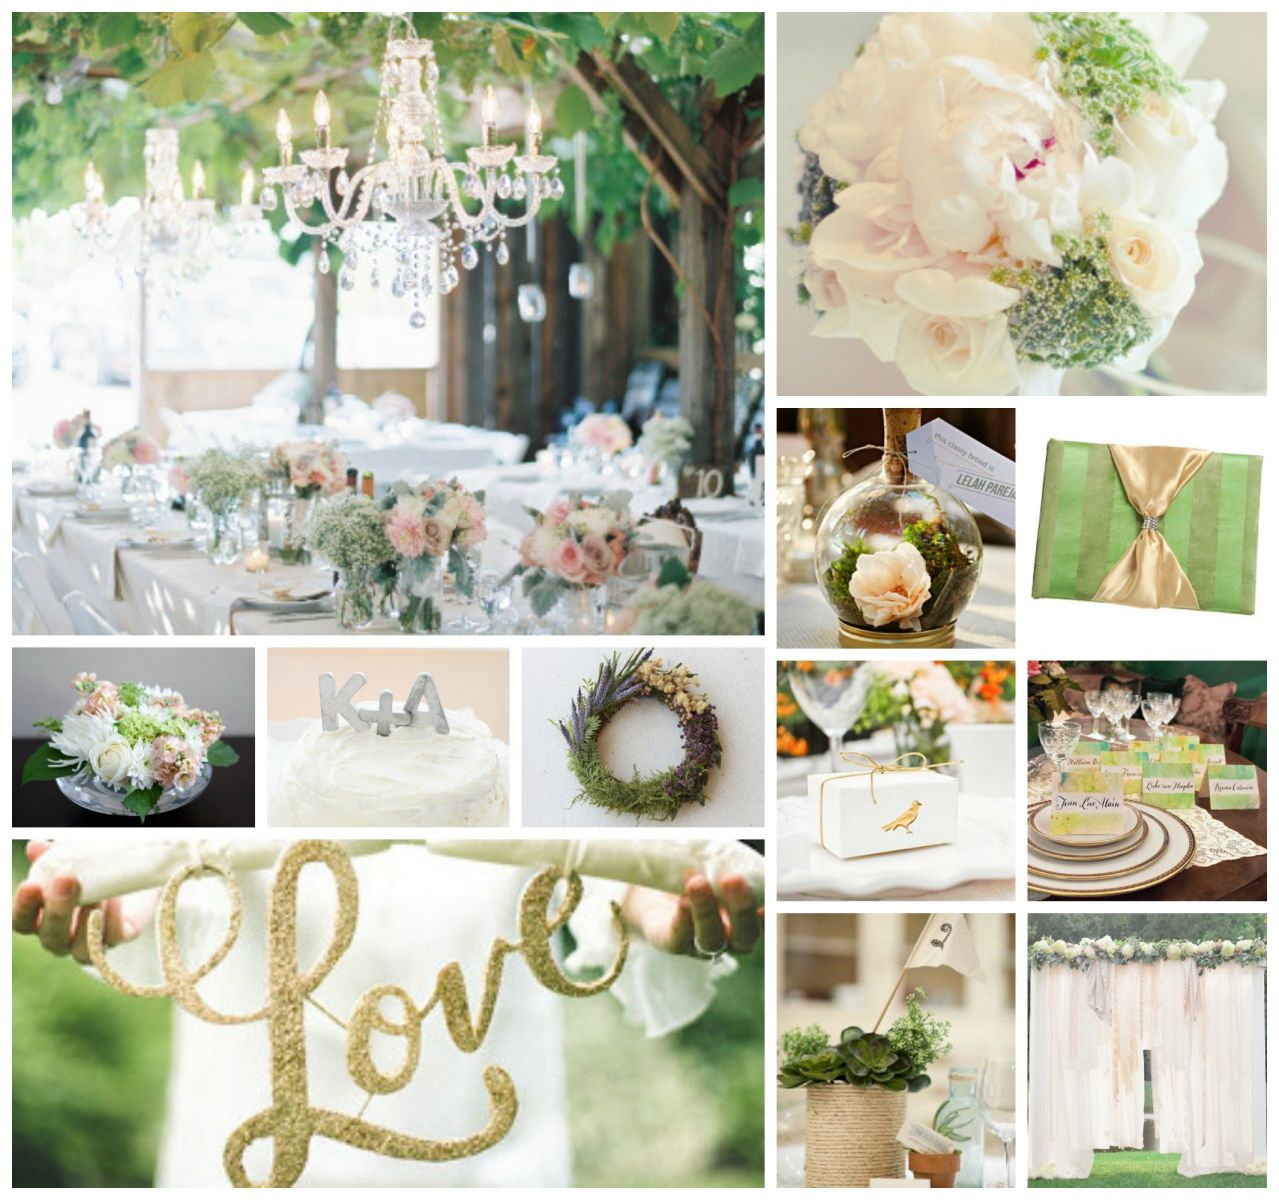 Wedding Color Schemes: Neutrals | AllFreeDIYWeddings.com